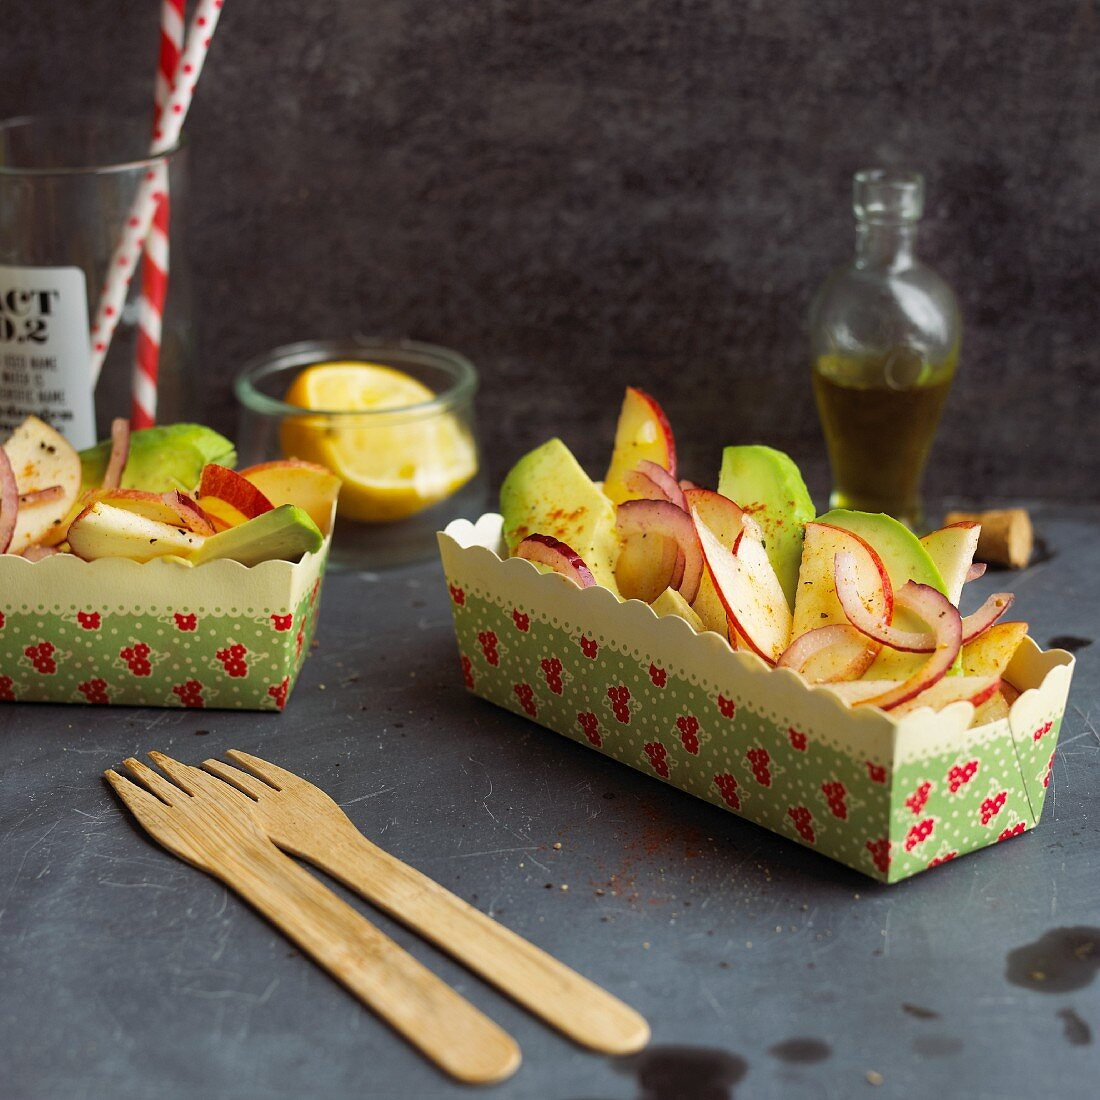 Fruity avocado salad in two paper dishes